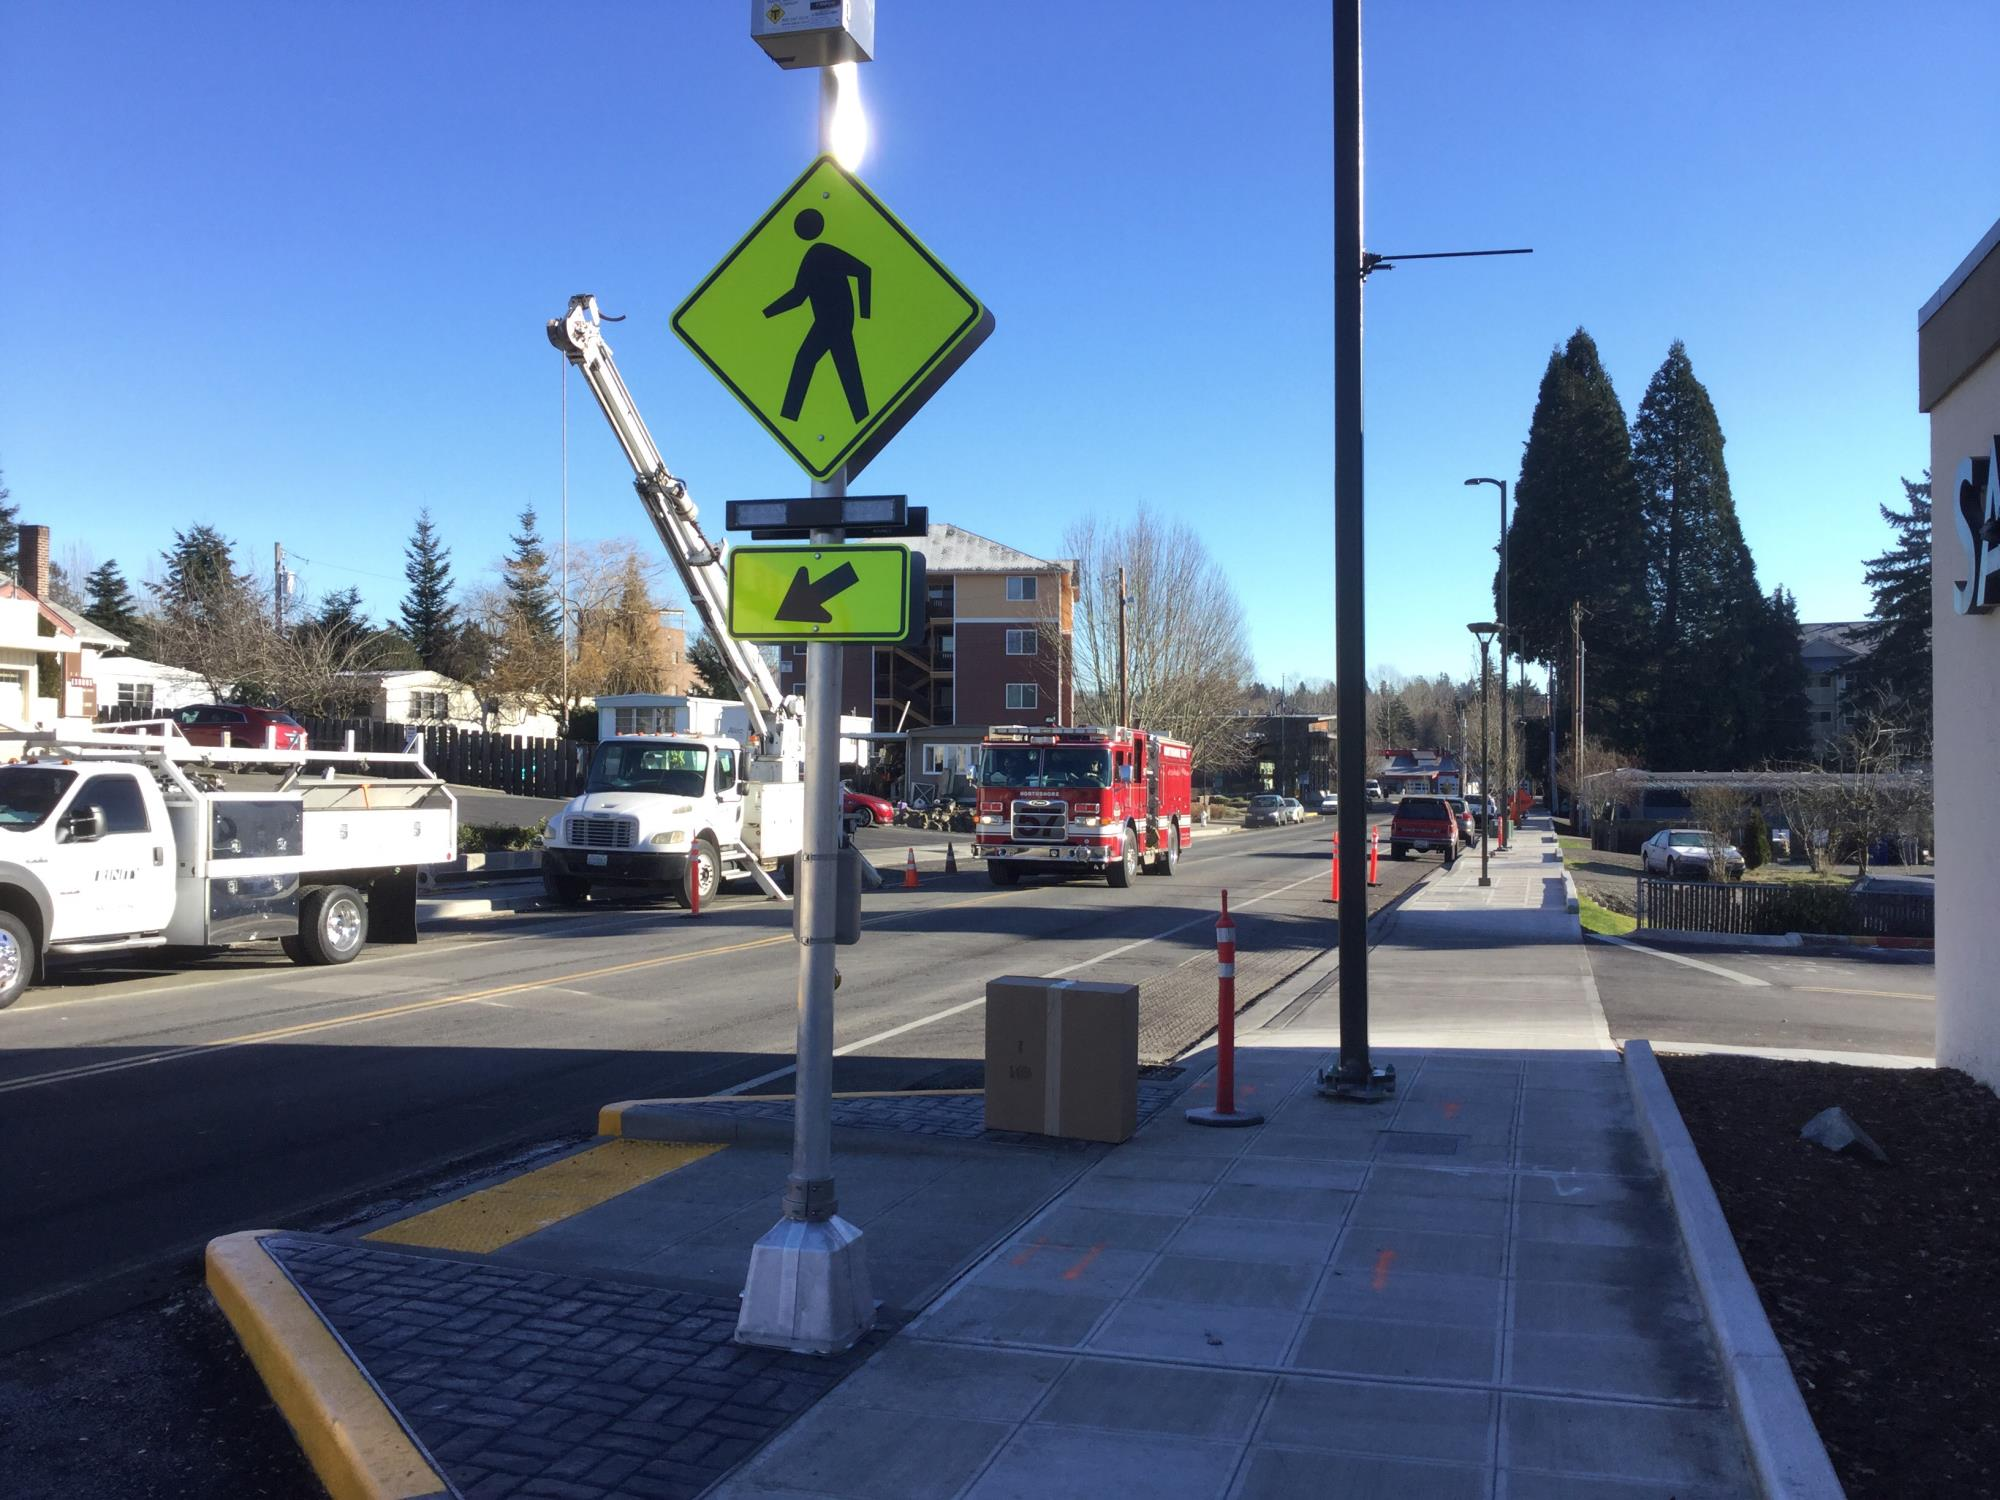 Rectangular Rapid Flashing Beacon (RRFB) for Pedestrian Crossings